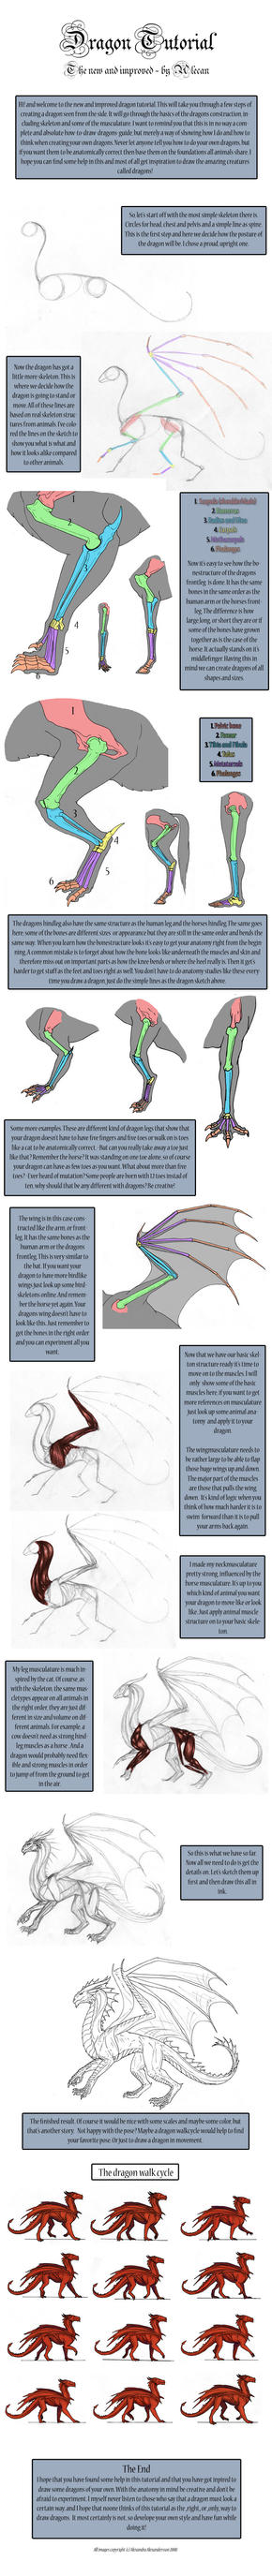 Dragon Tutorial - New by alecan